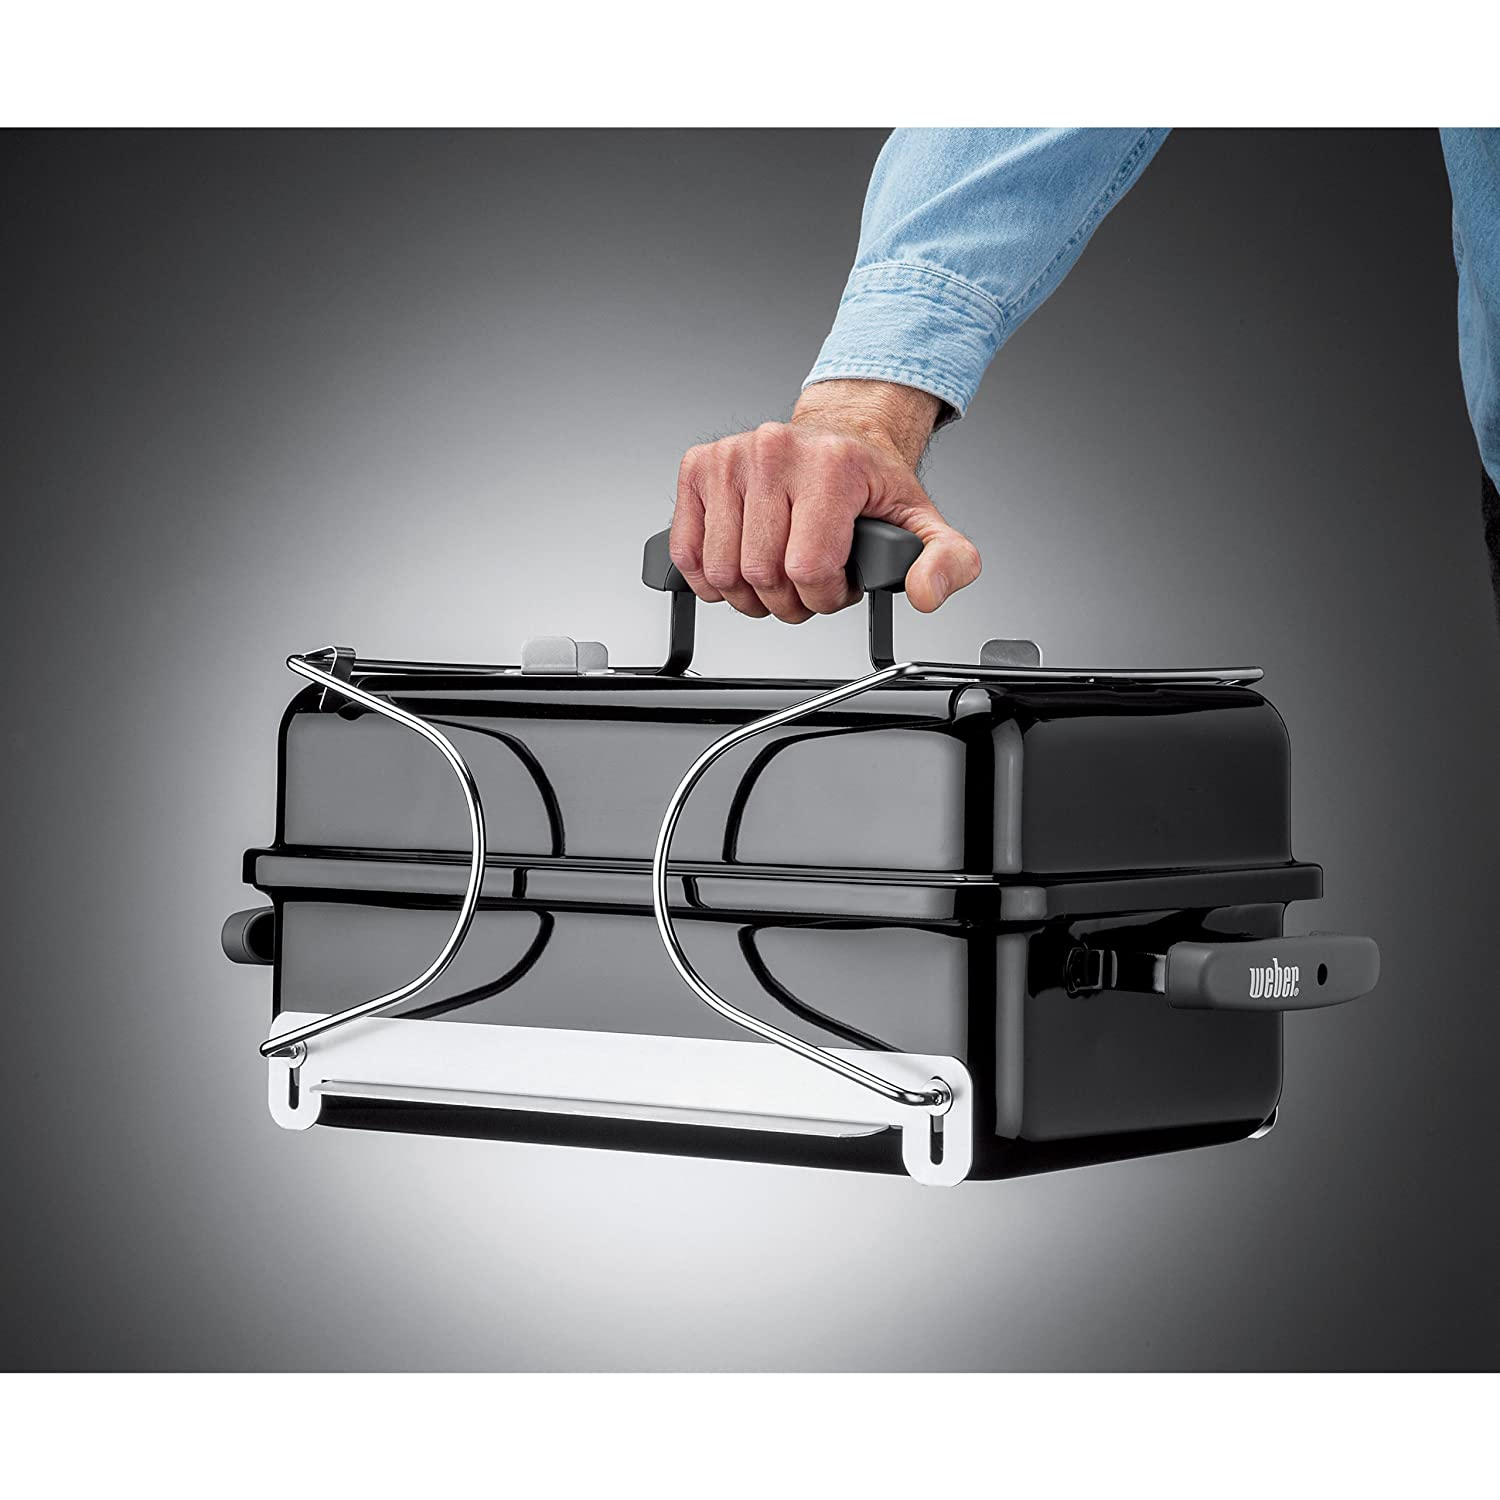 The Weber Go-Anywhere folded up and ready to go into the trunk!